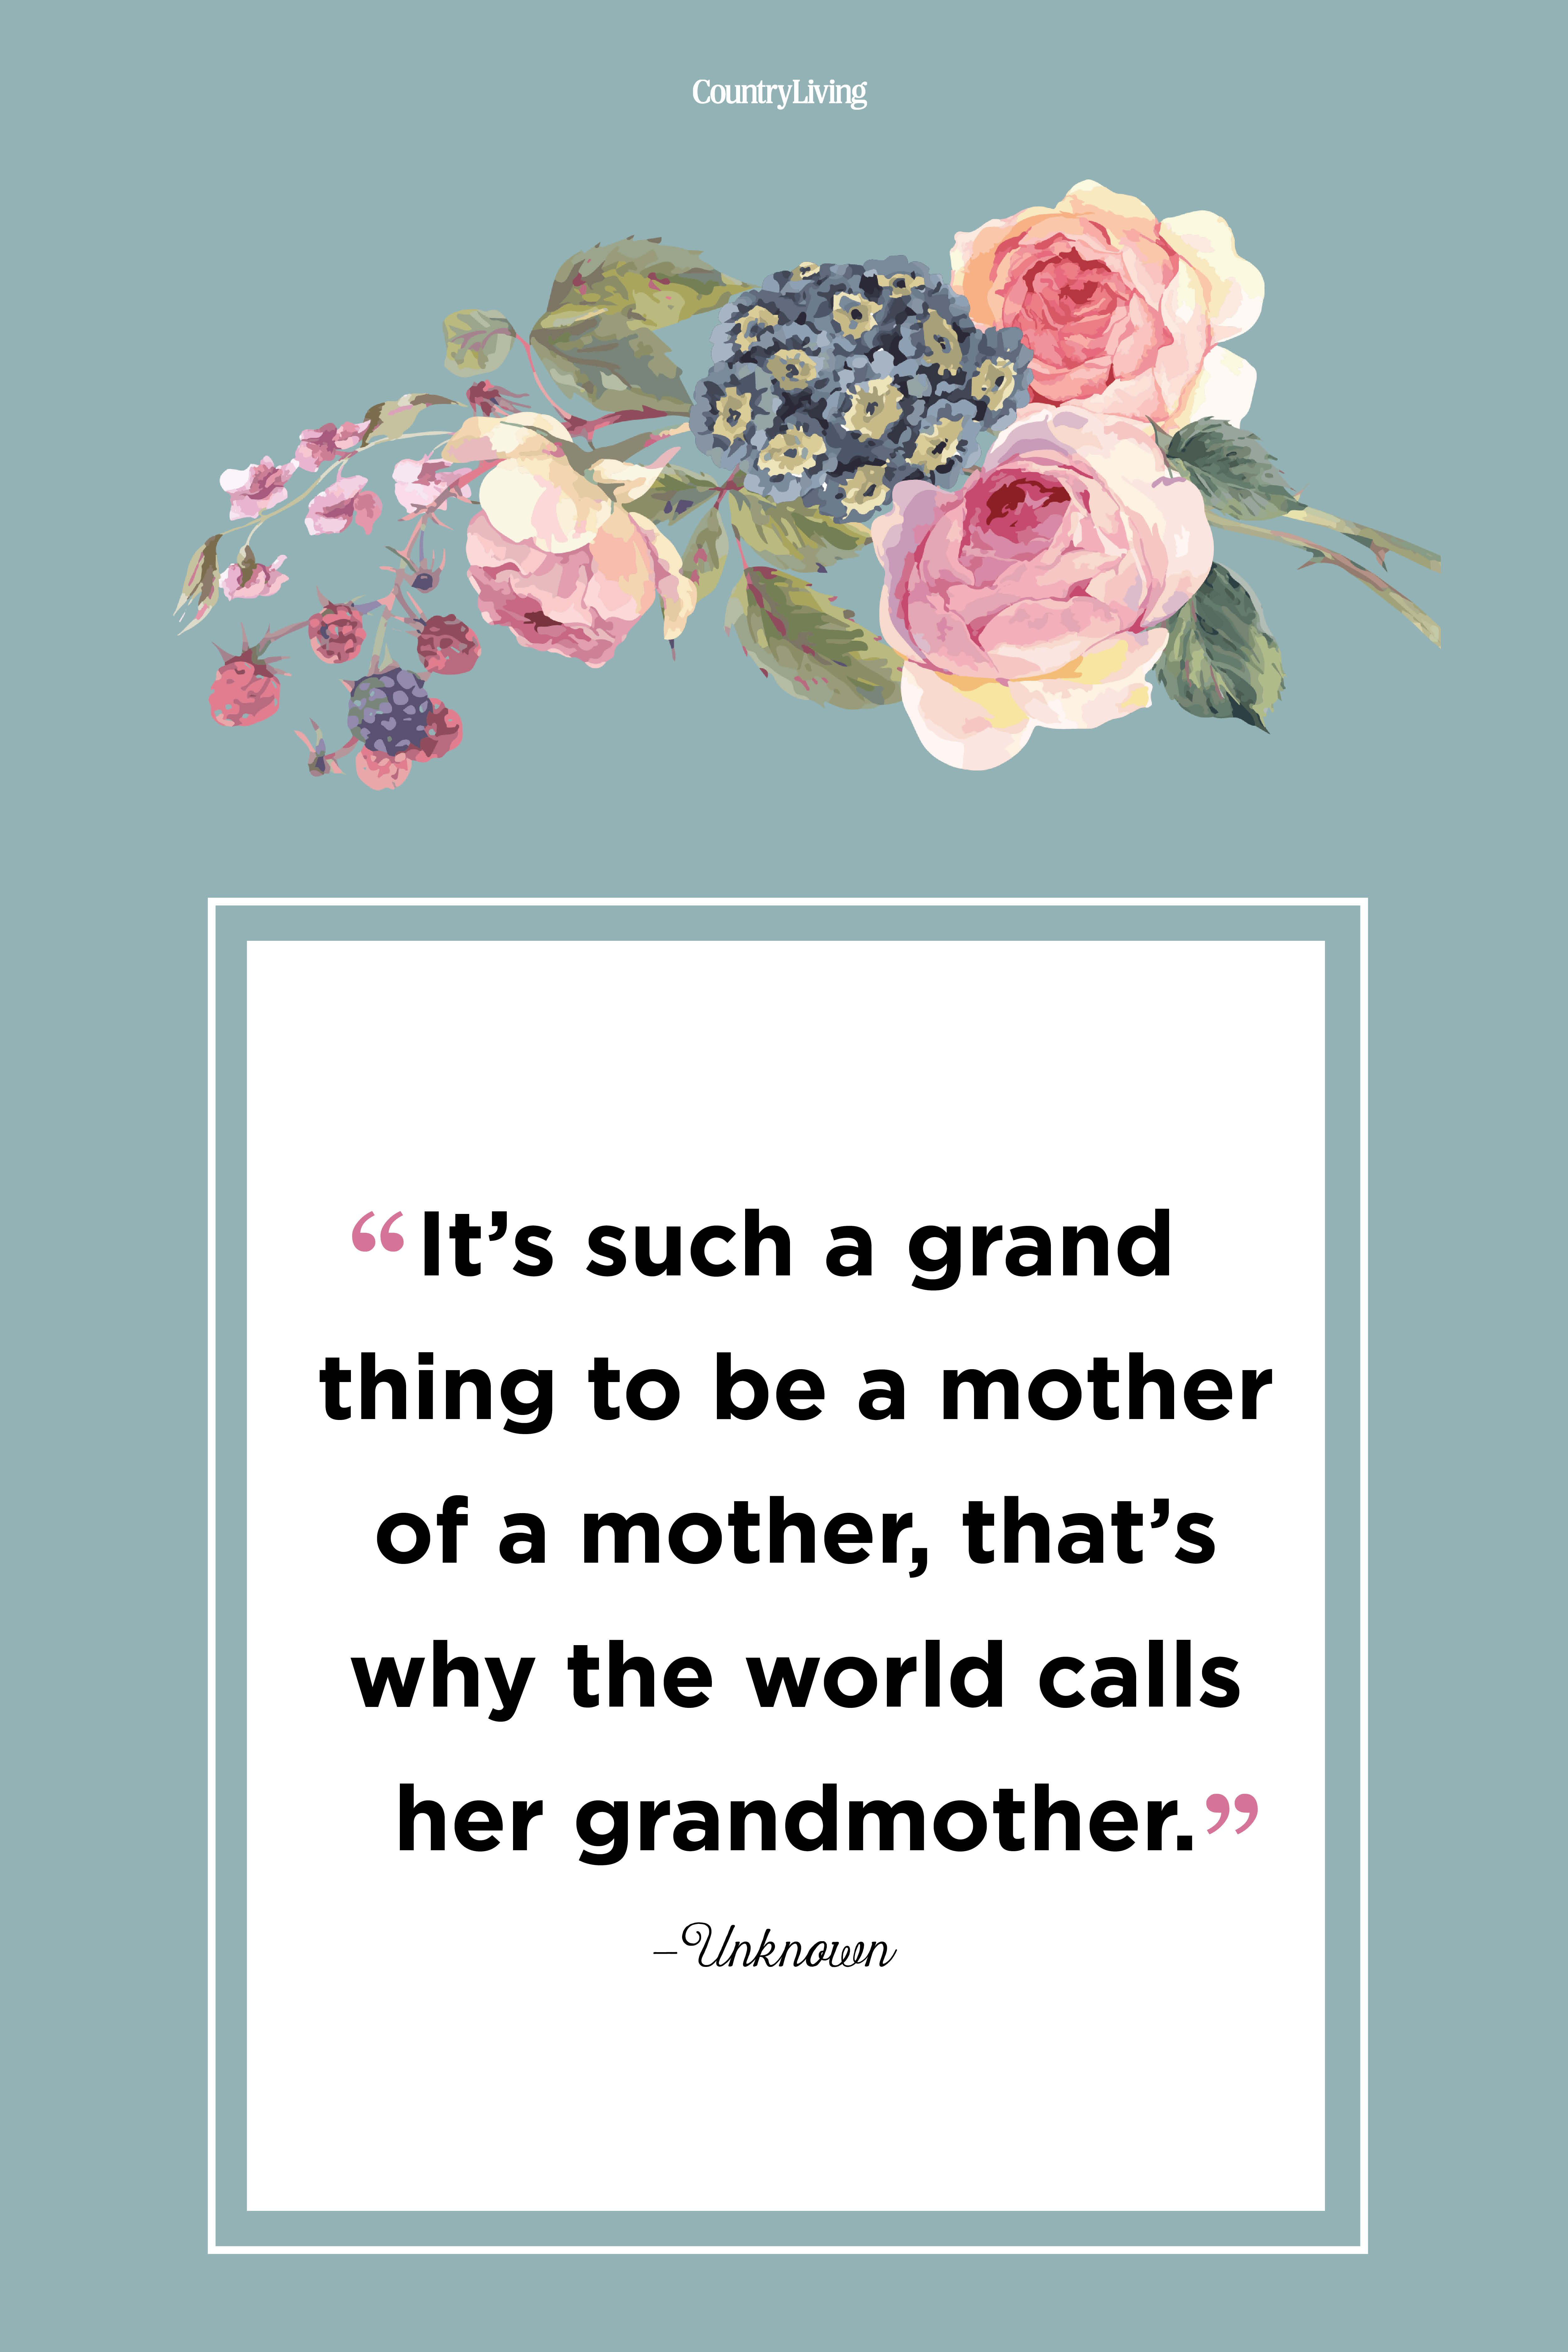 20 Grandma Love Quotes - Best Grandmother Quotes and Sayings